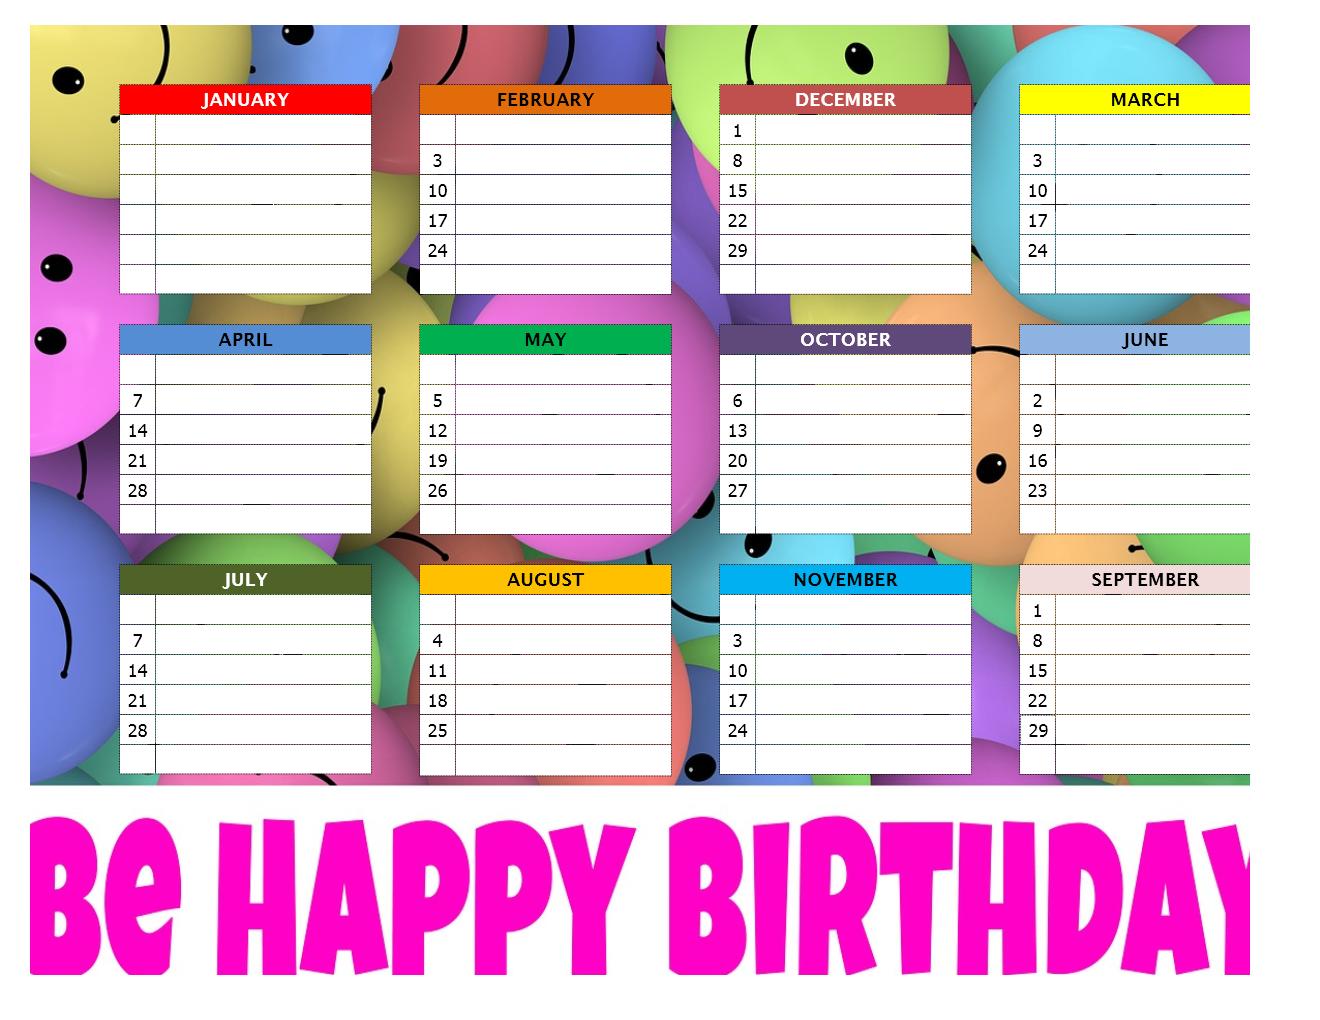 birthday chart template for classroom - birthday chart